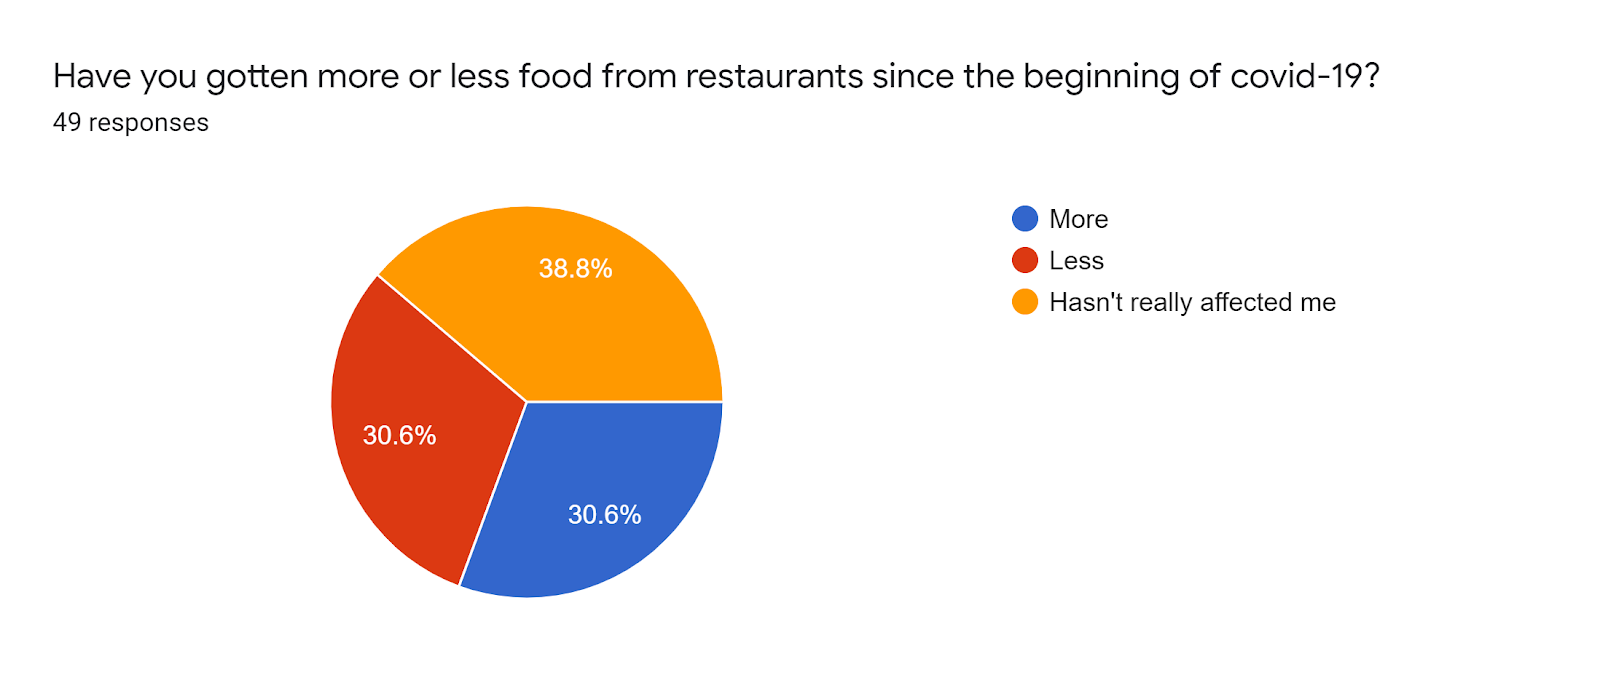 Forms response chart. Question title: Have you gotten more or less food from restaurants since the beginning of covid-19?. Number of responses: 49 responses.